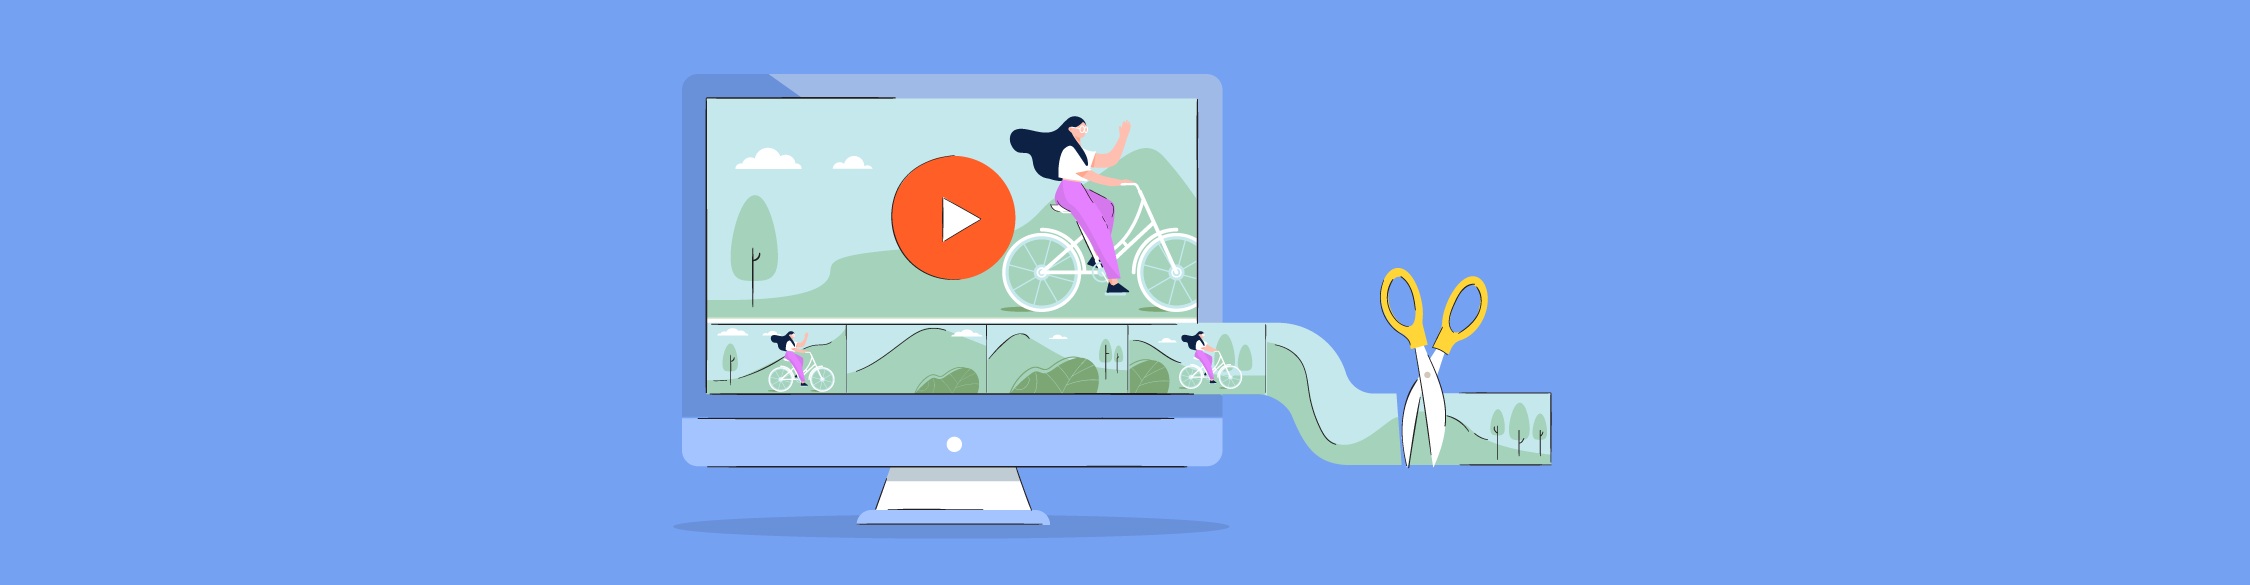 How Long Should a Video Be? Video Length Best Practices [2021]